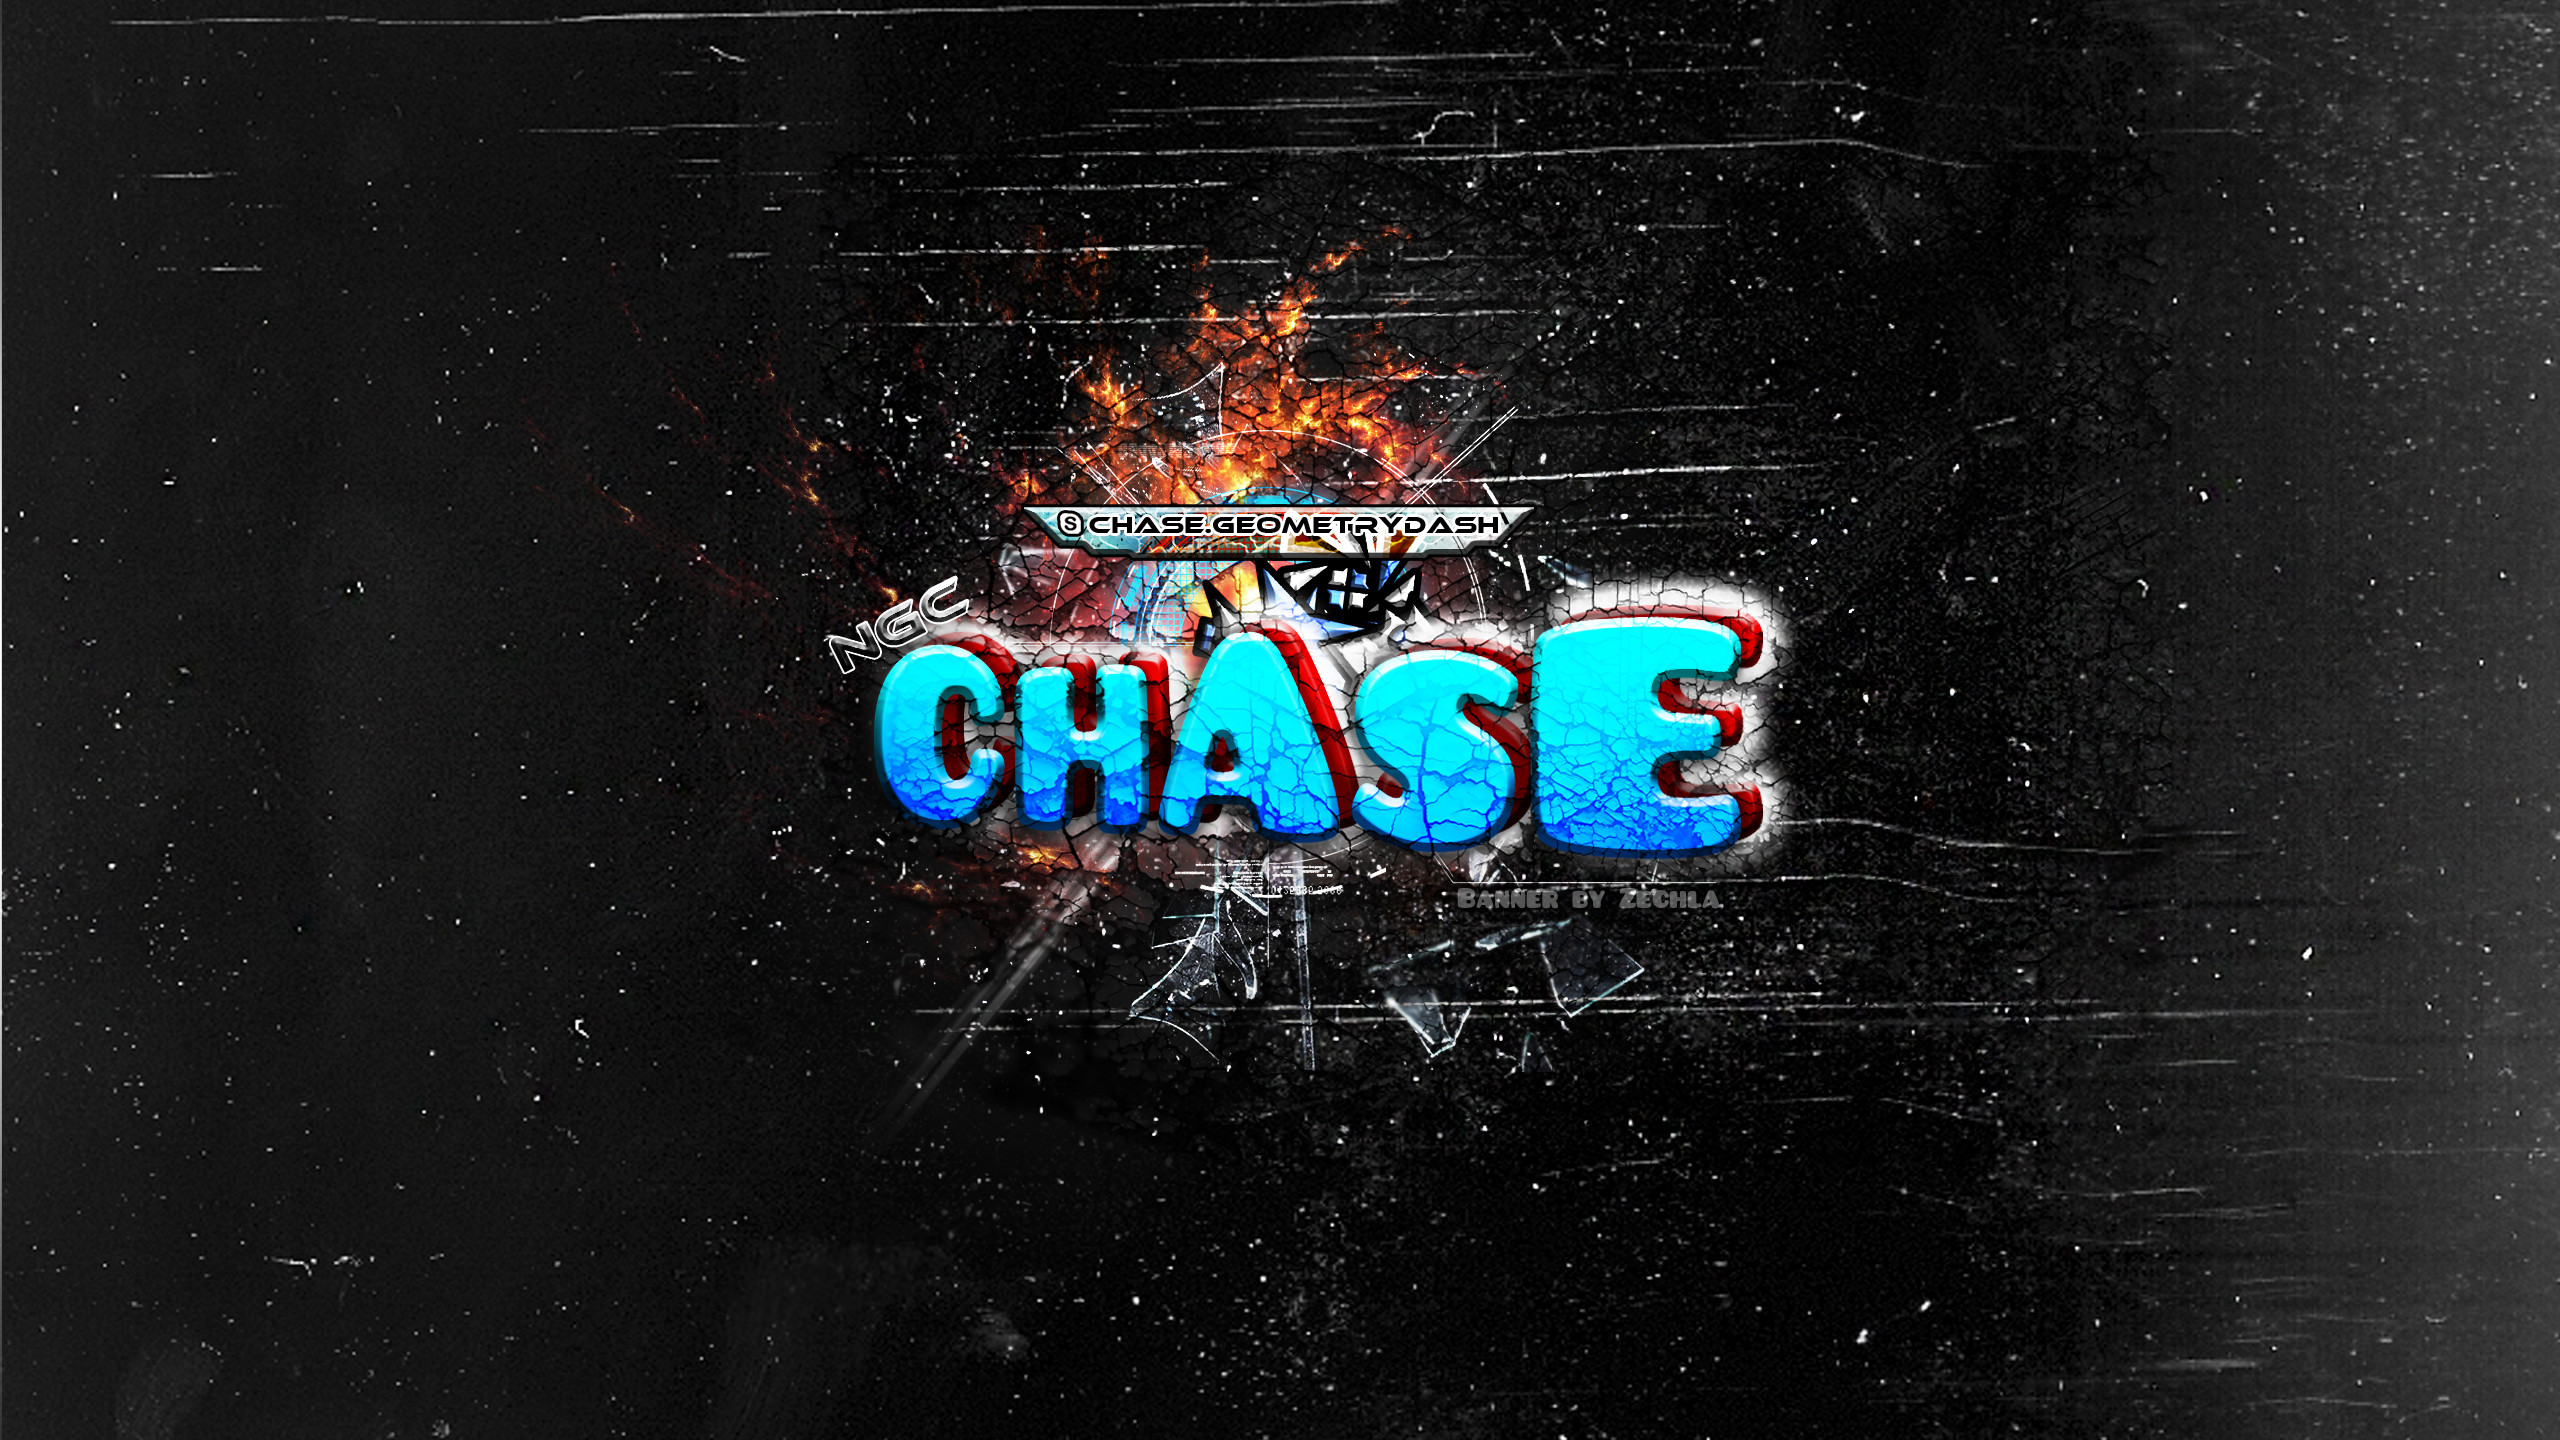 … Dash' Chase's YouTube Banner …